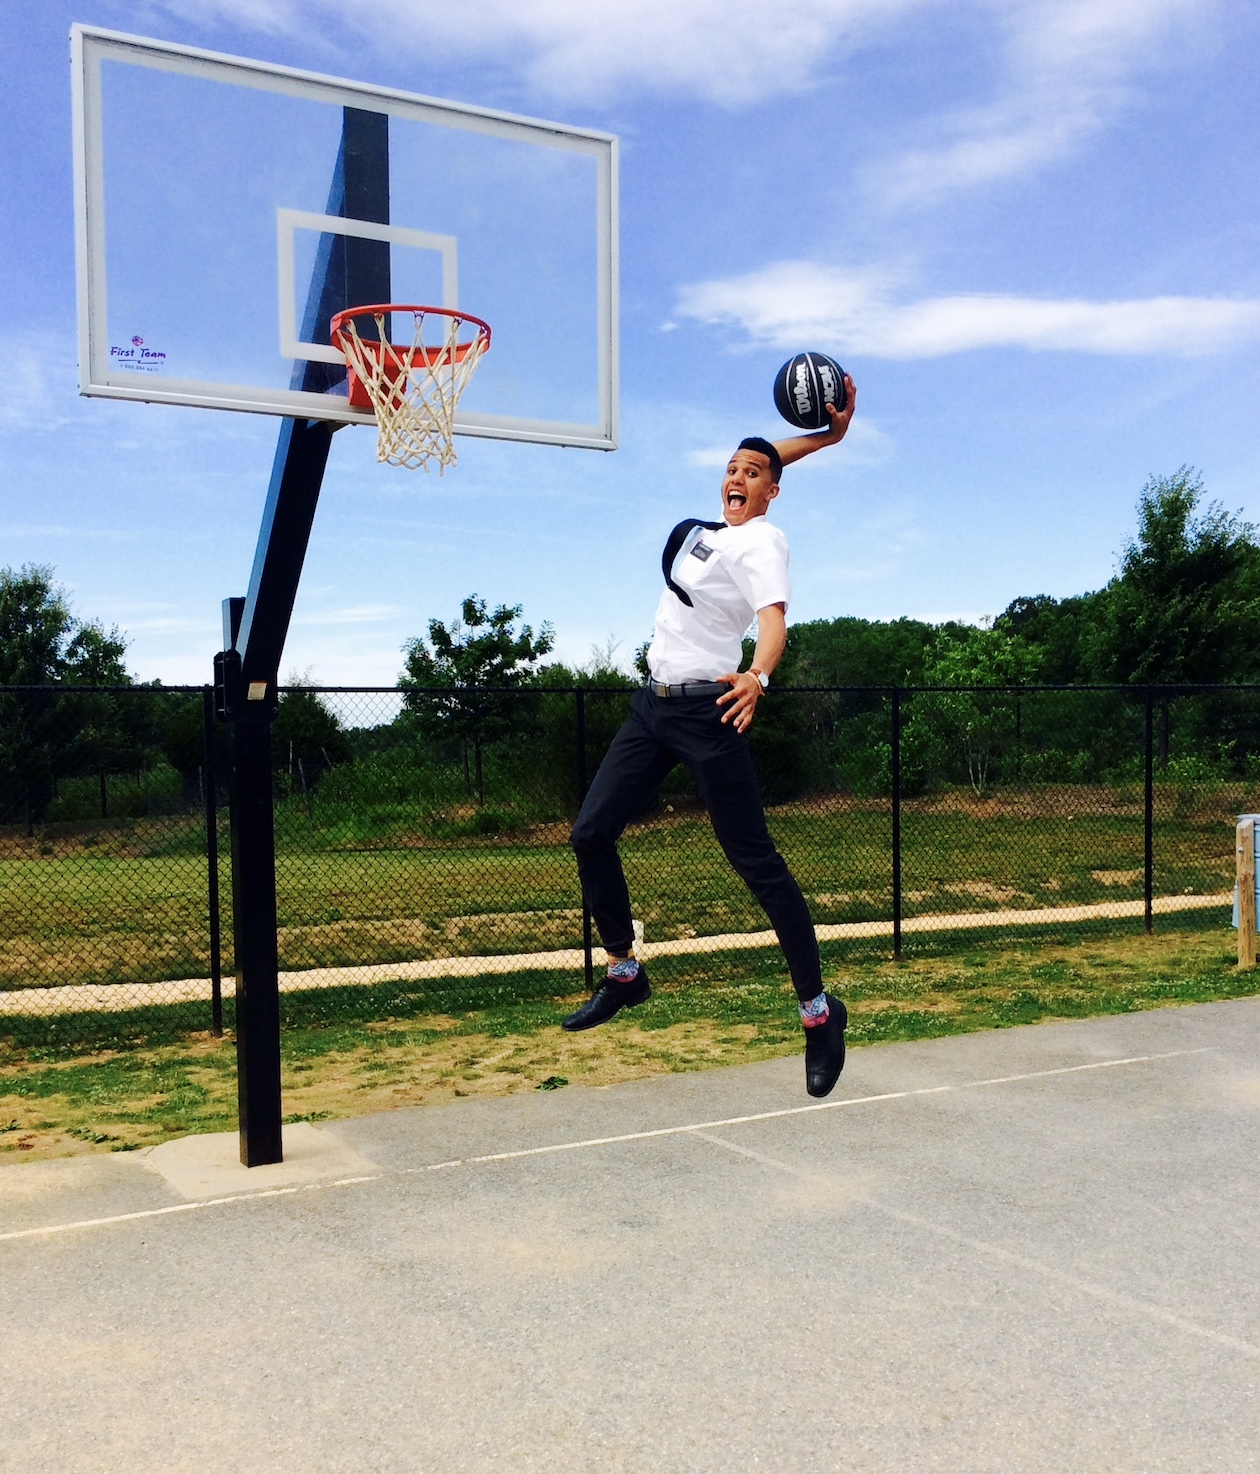 Brendan Bailey goes up for a dunk while dressed in missionary attire. Bailey, the son of former NBA player Thurl Bailey, served his mission in Washington D.C. from 2016 to 2018.